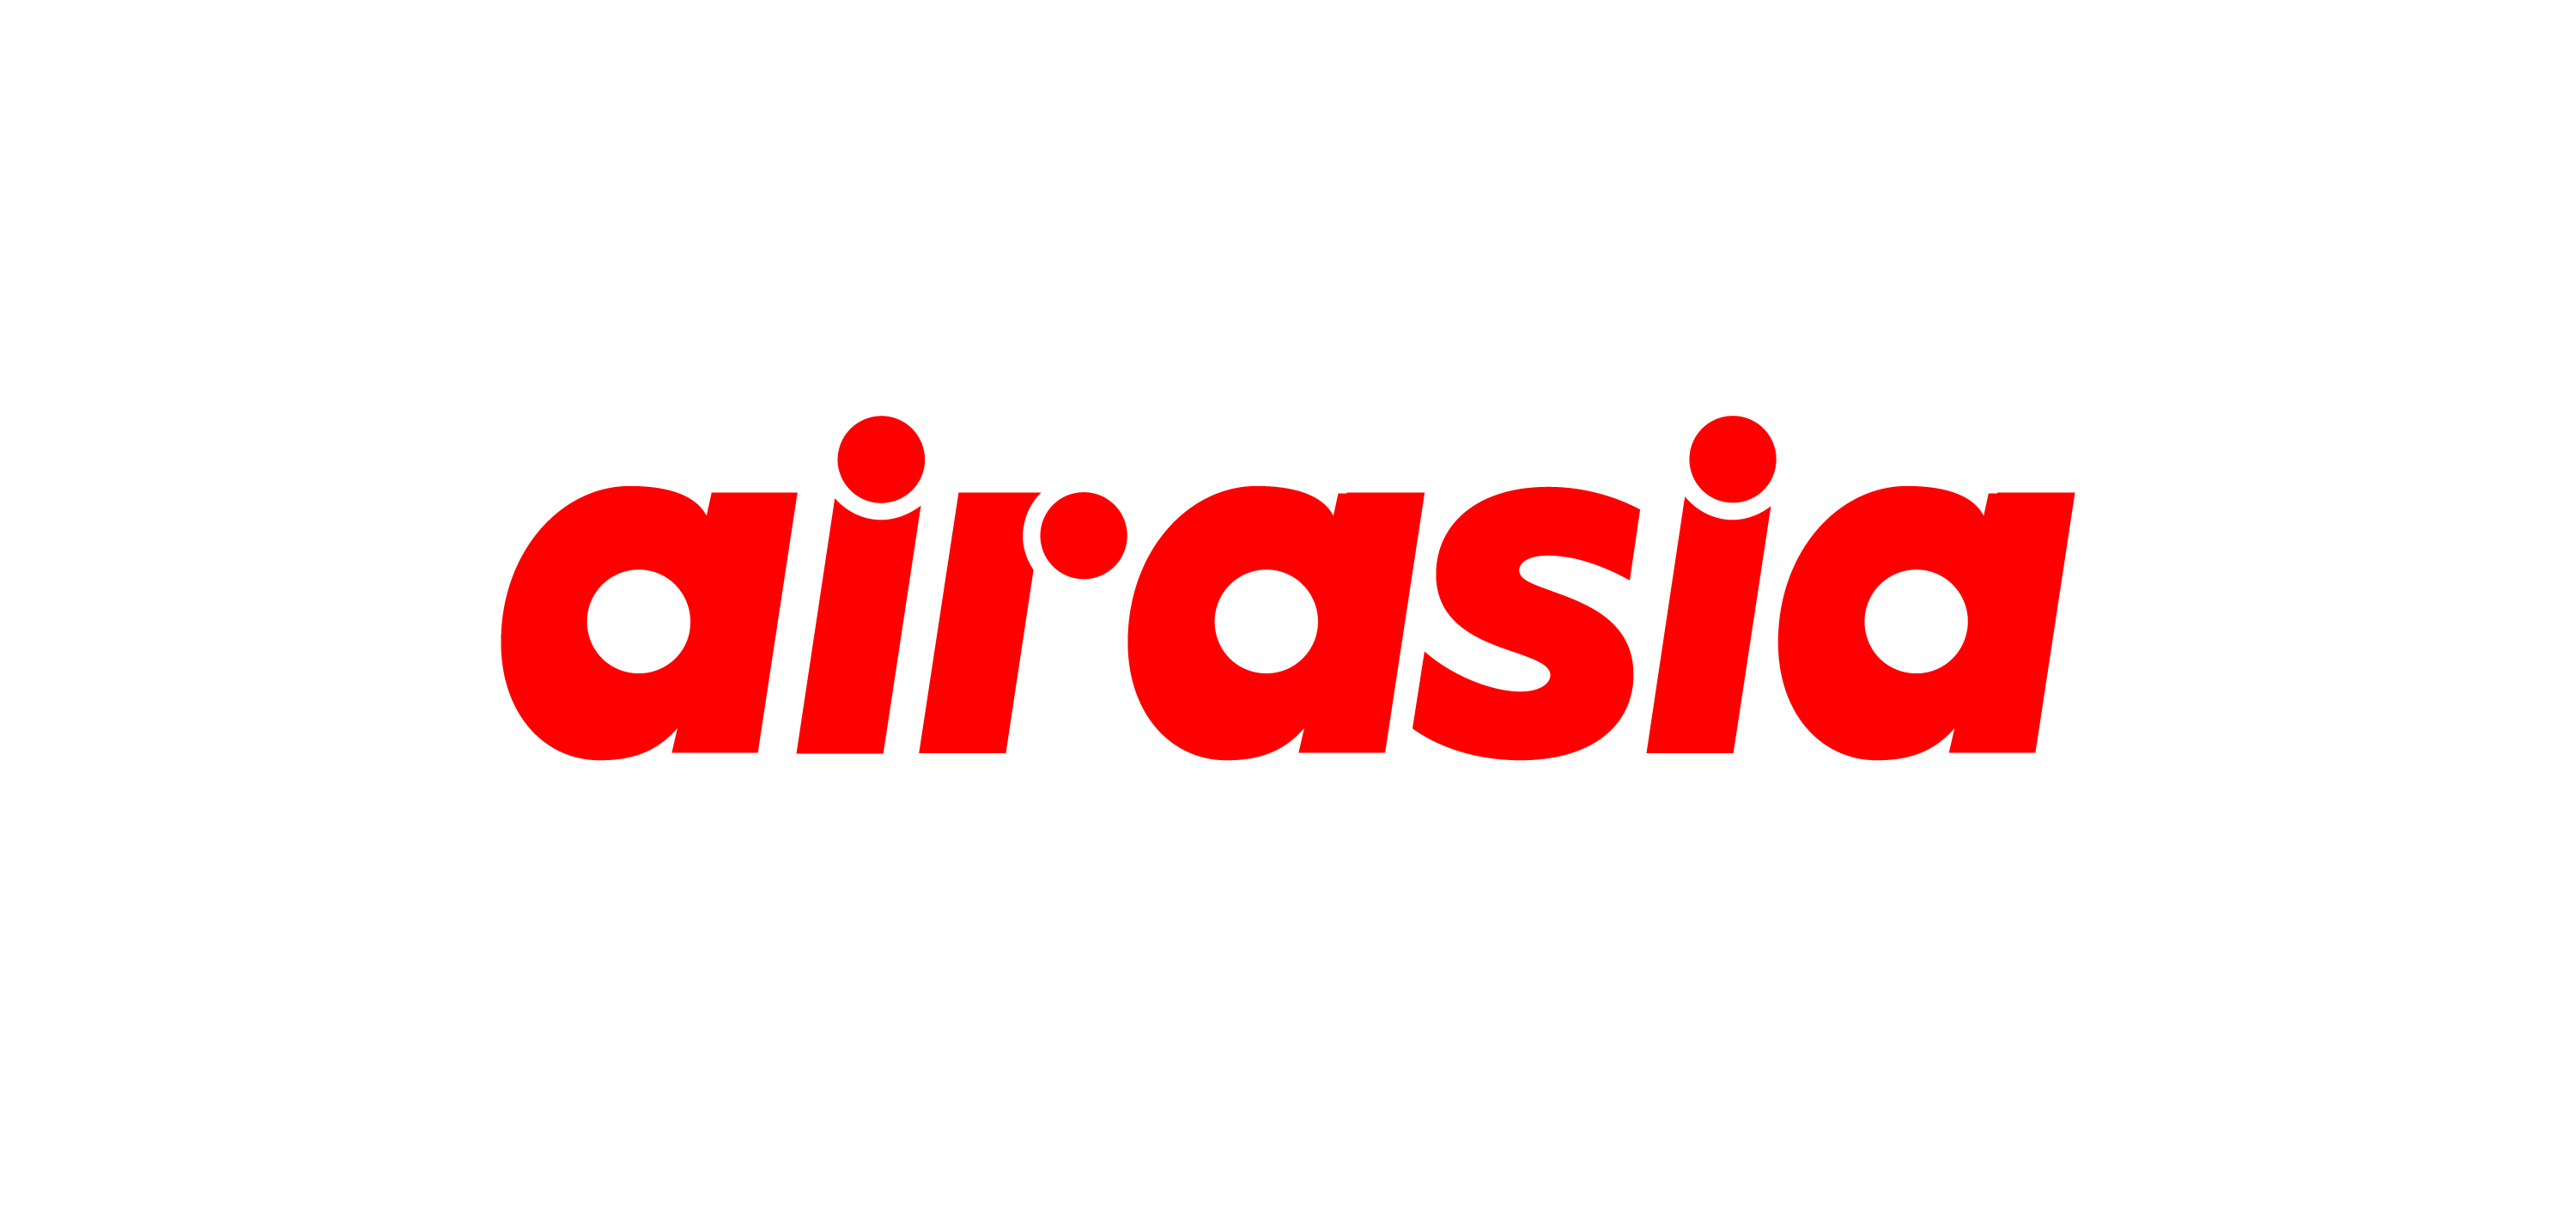 AirAsia logo vector new 2020